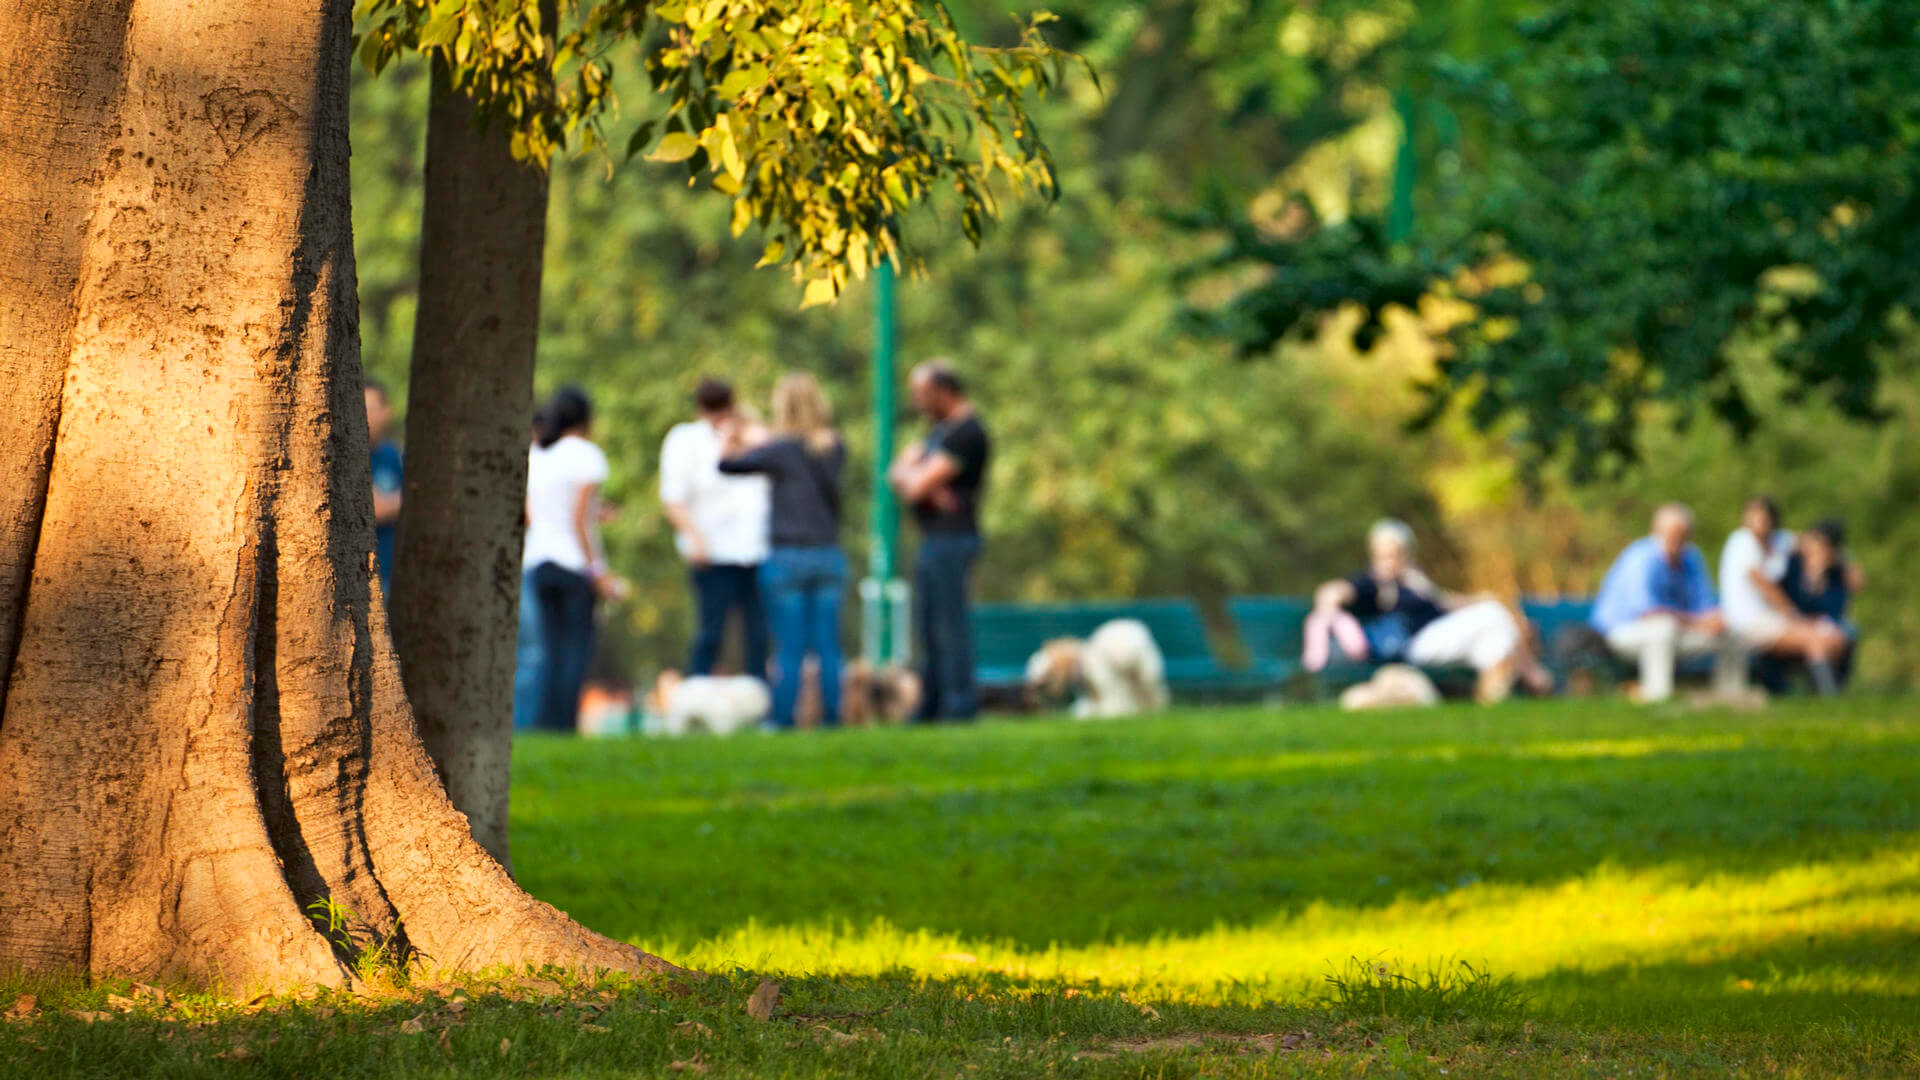 a tree in the park with people standing in the background